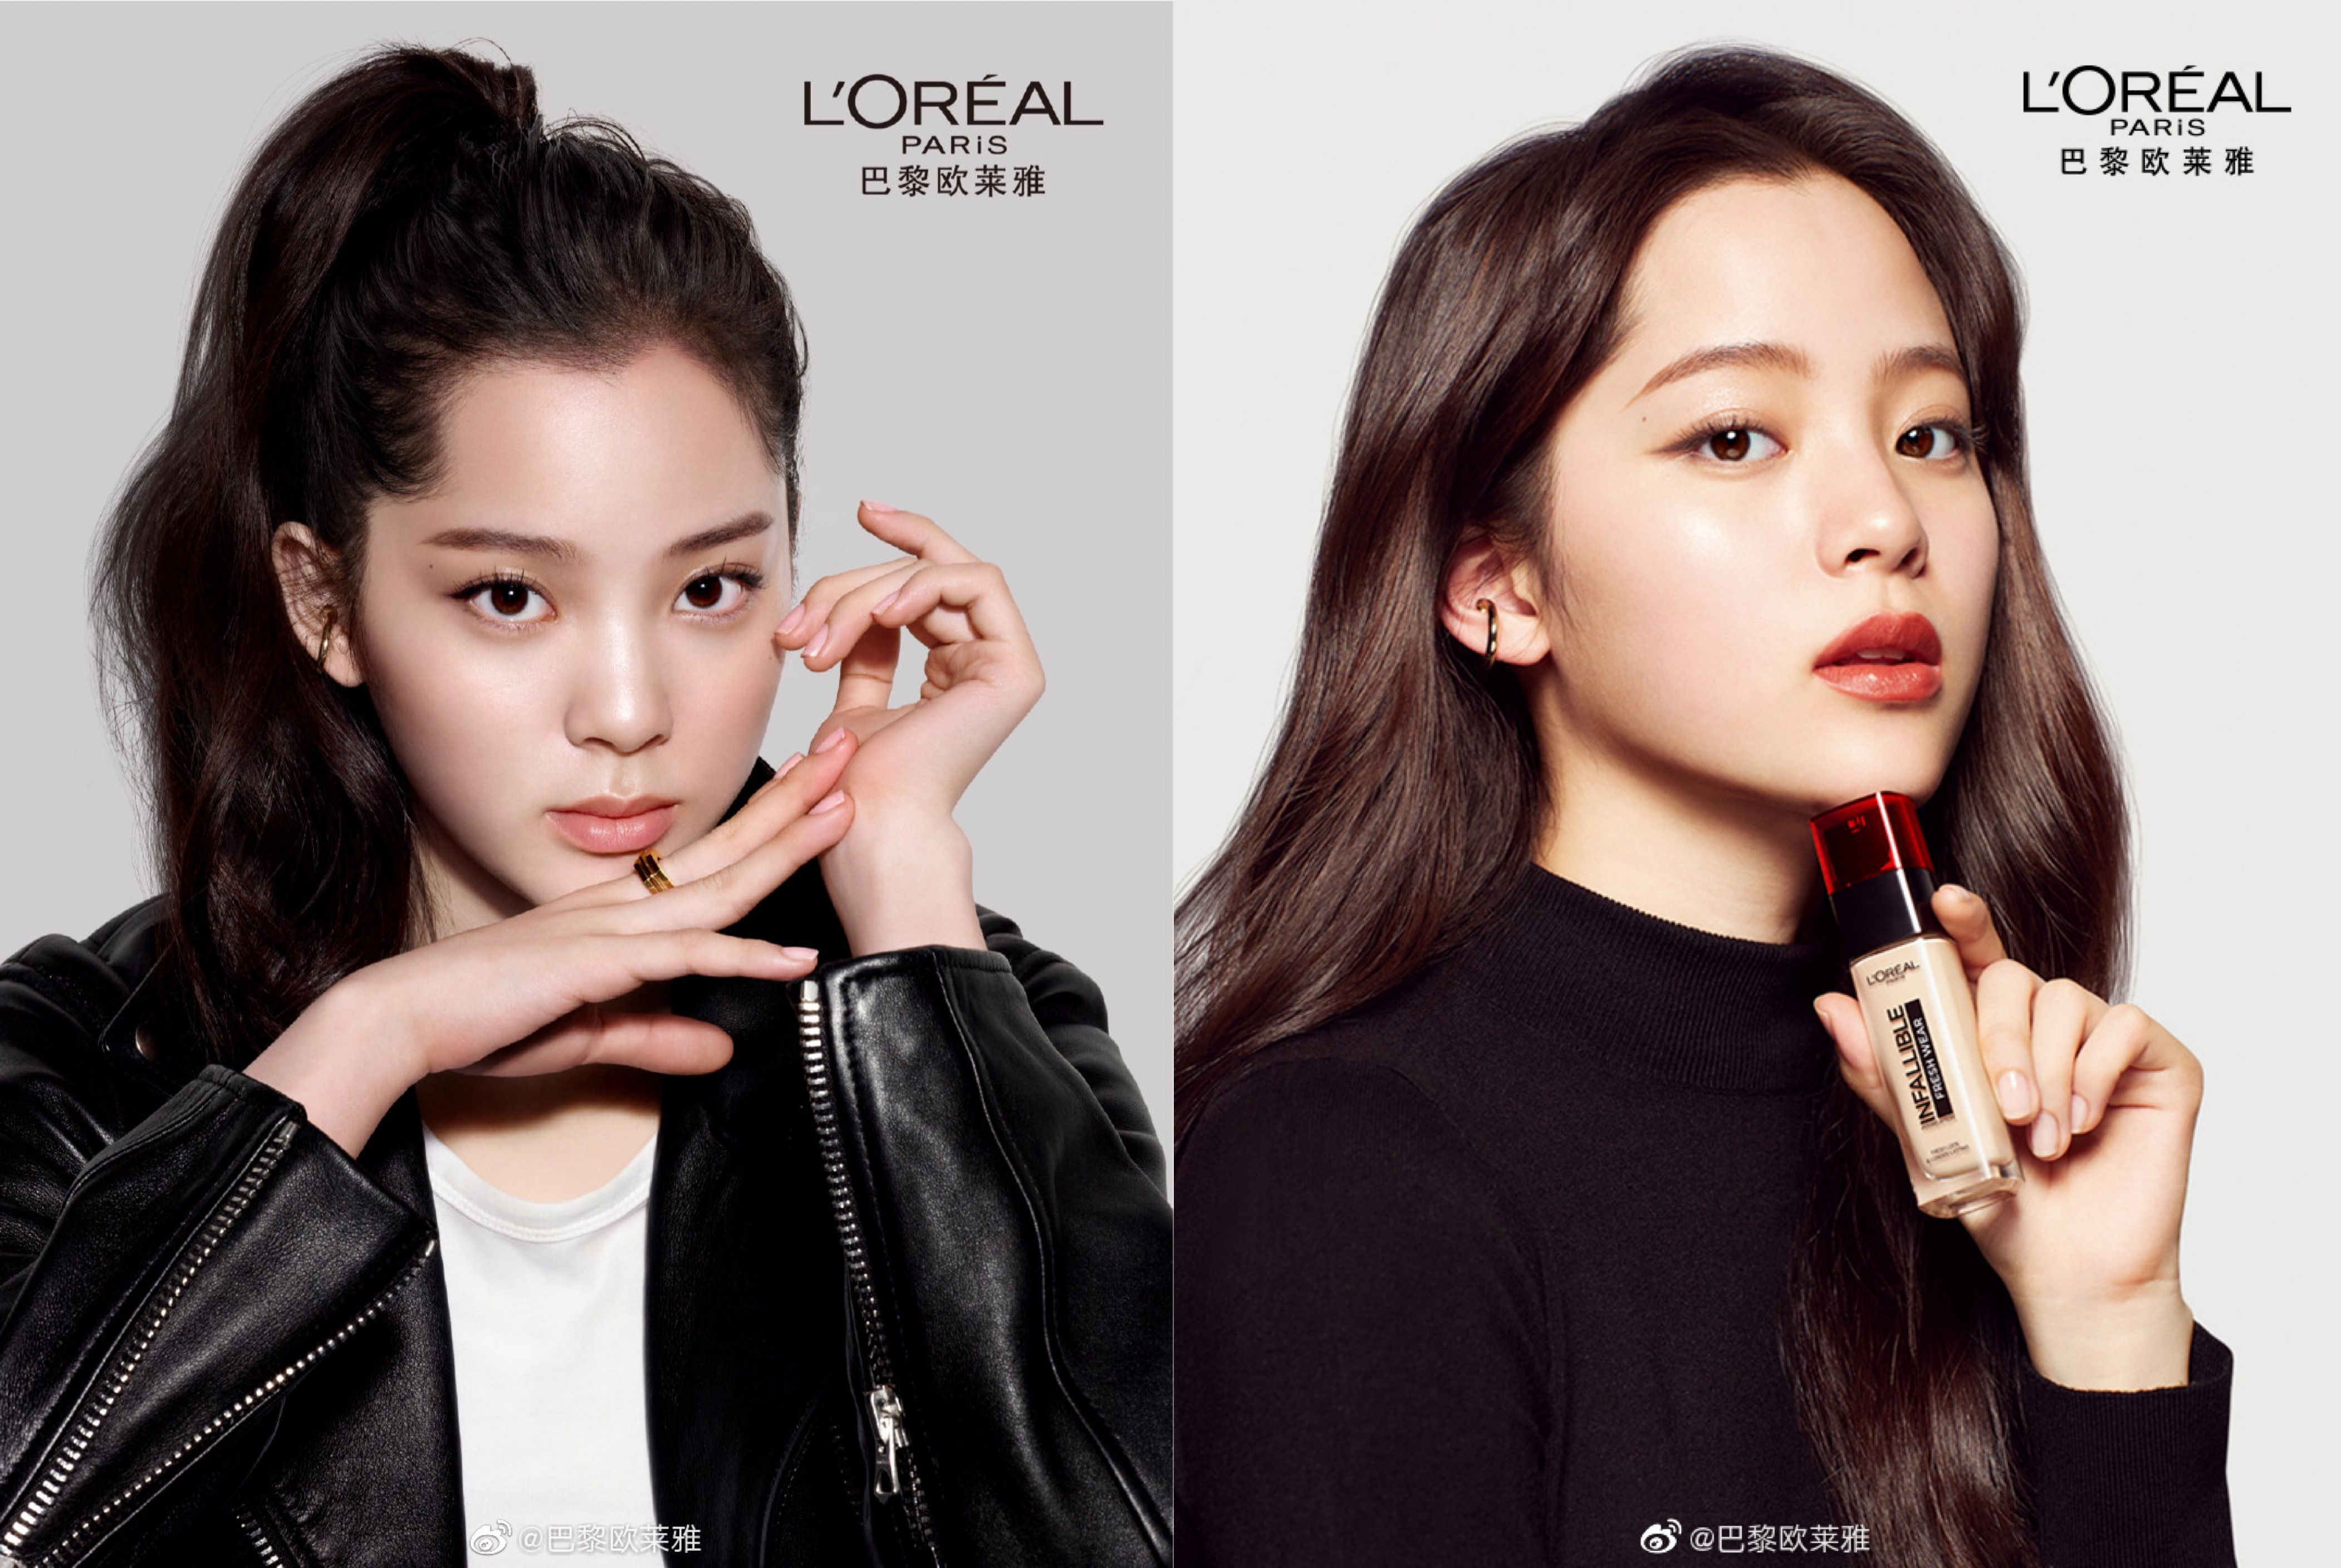 L'Oréal Paris appointed Nana Ou-Yang, who is known to have fair skin, as its latest China ambassador earlier this year.